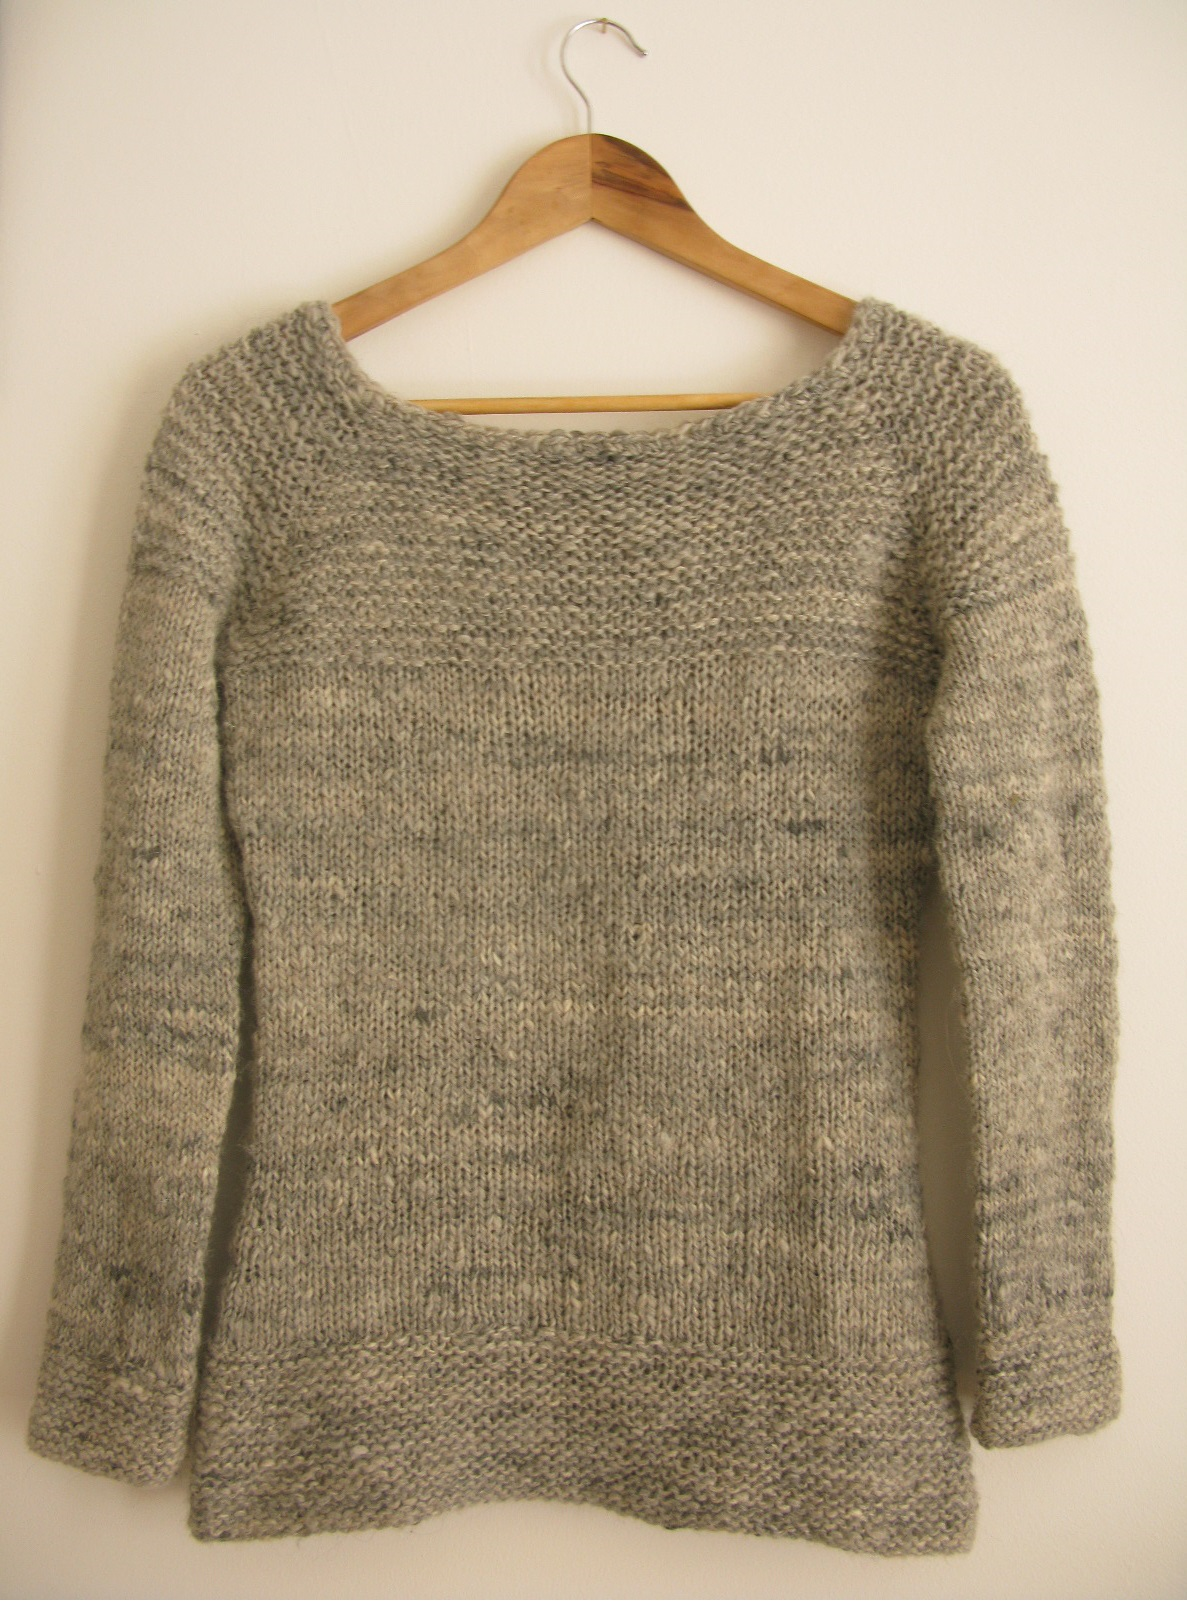 Free Pullover Knitting Patterns : Caora Sweater Pattern Caora Fibres